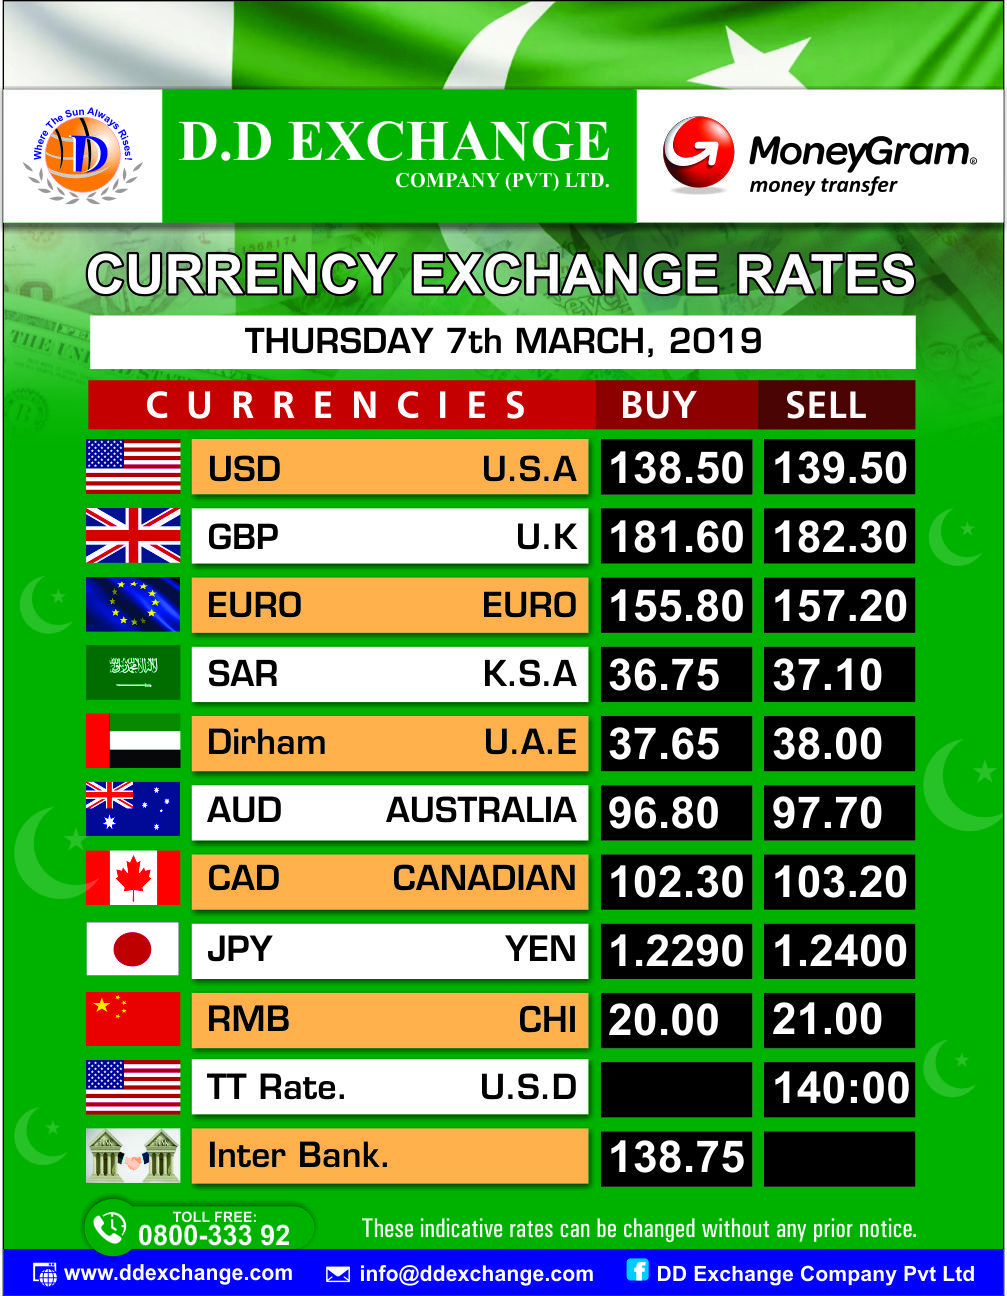 Western Union Exchange Rate Indian Rupees : western, union, exchange, indian, rupees, Forex, Rates, Rupee, TRADING